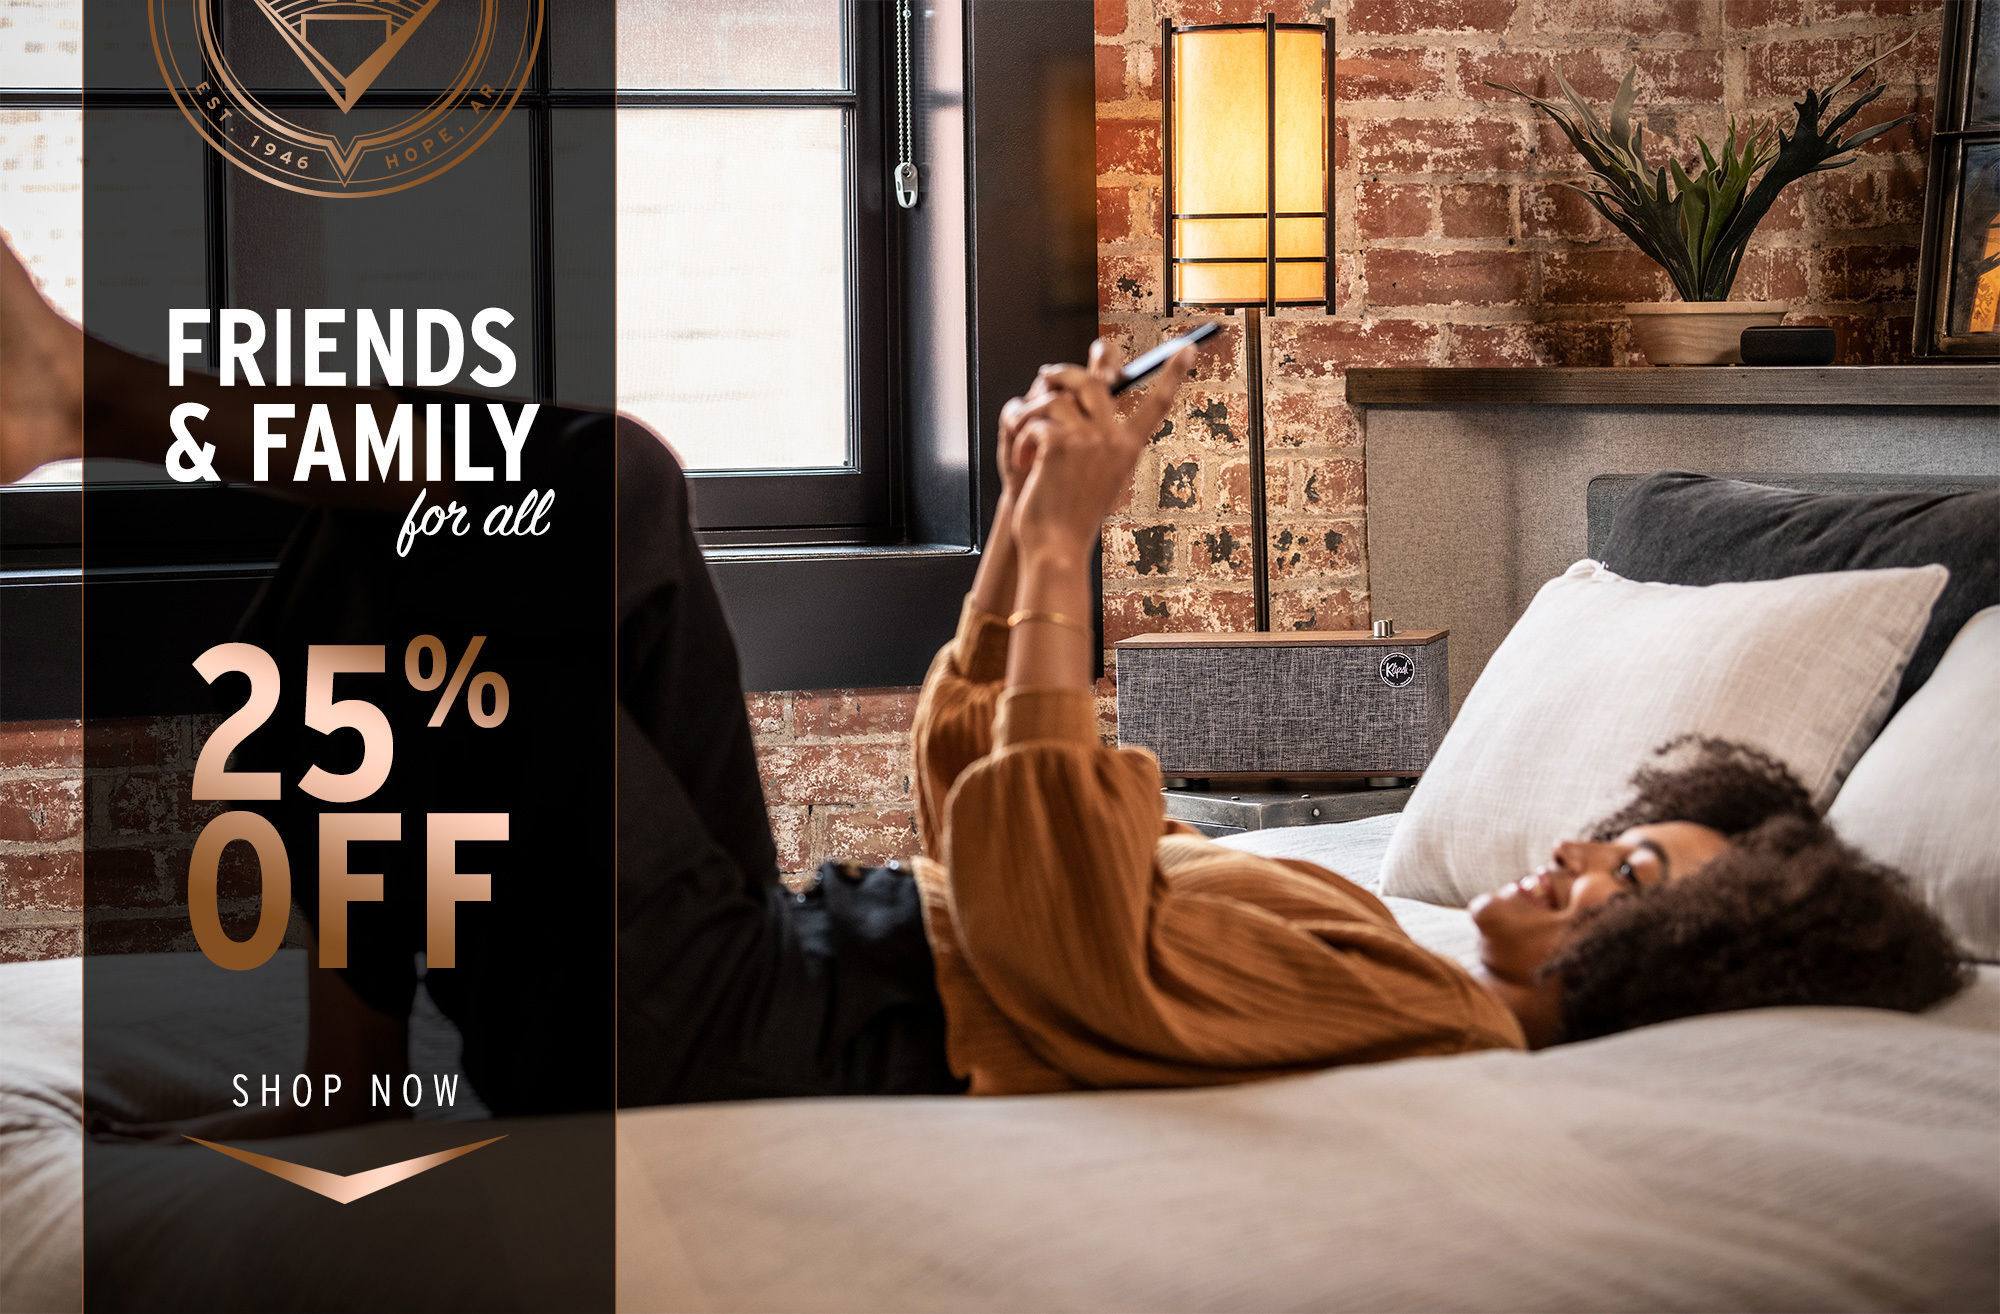 Friends and Family Landing Page Klipsch2020